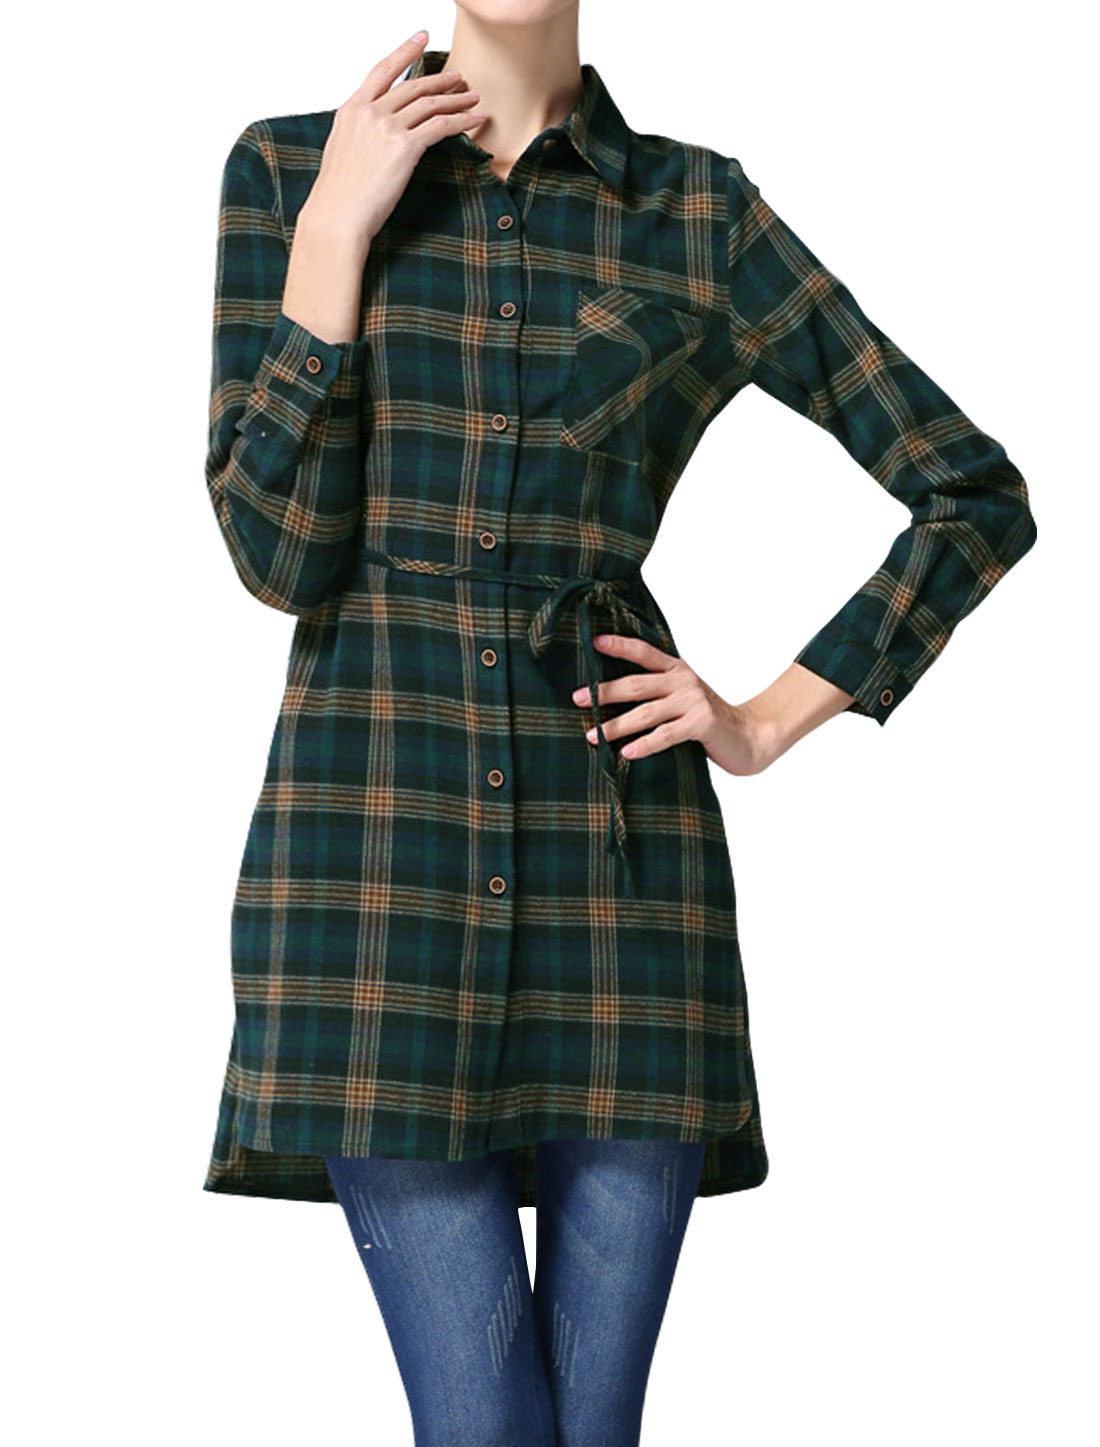 Women One Pocket Slim Fit Plaids Tunic Shirt w Waist String Green S